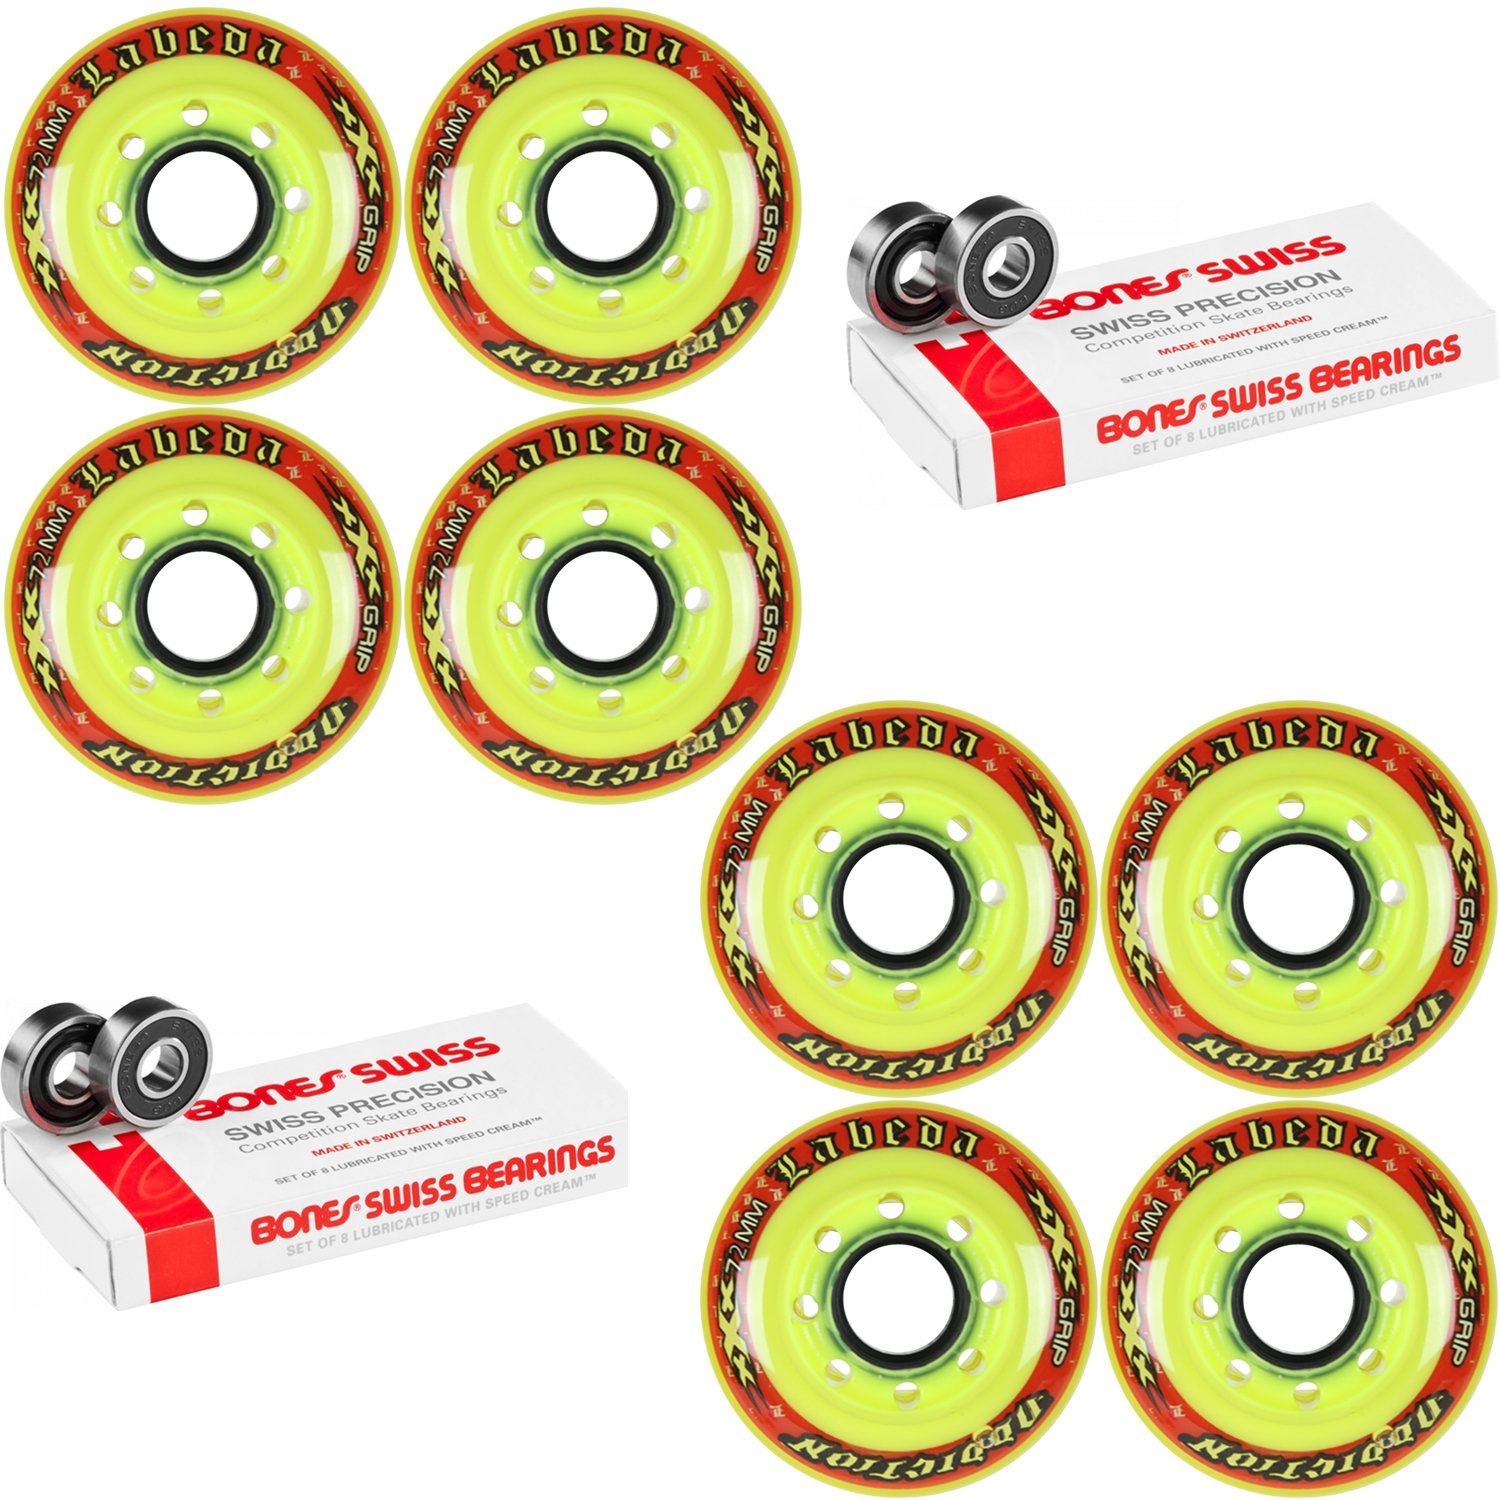 Labeda Addiction Wheels XXX Grip Yellow/Red 72mm Roller Hockey x8 +Bones Swiss